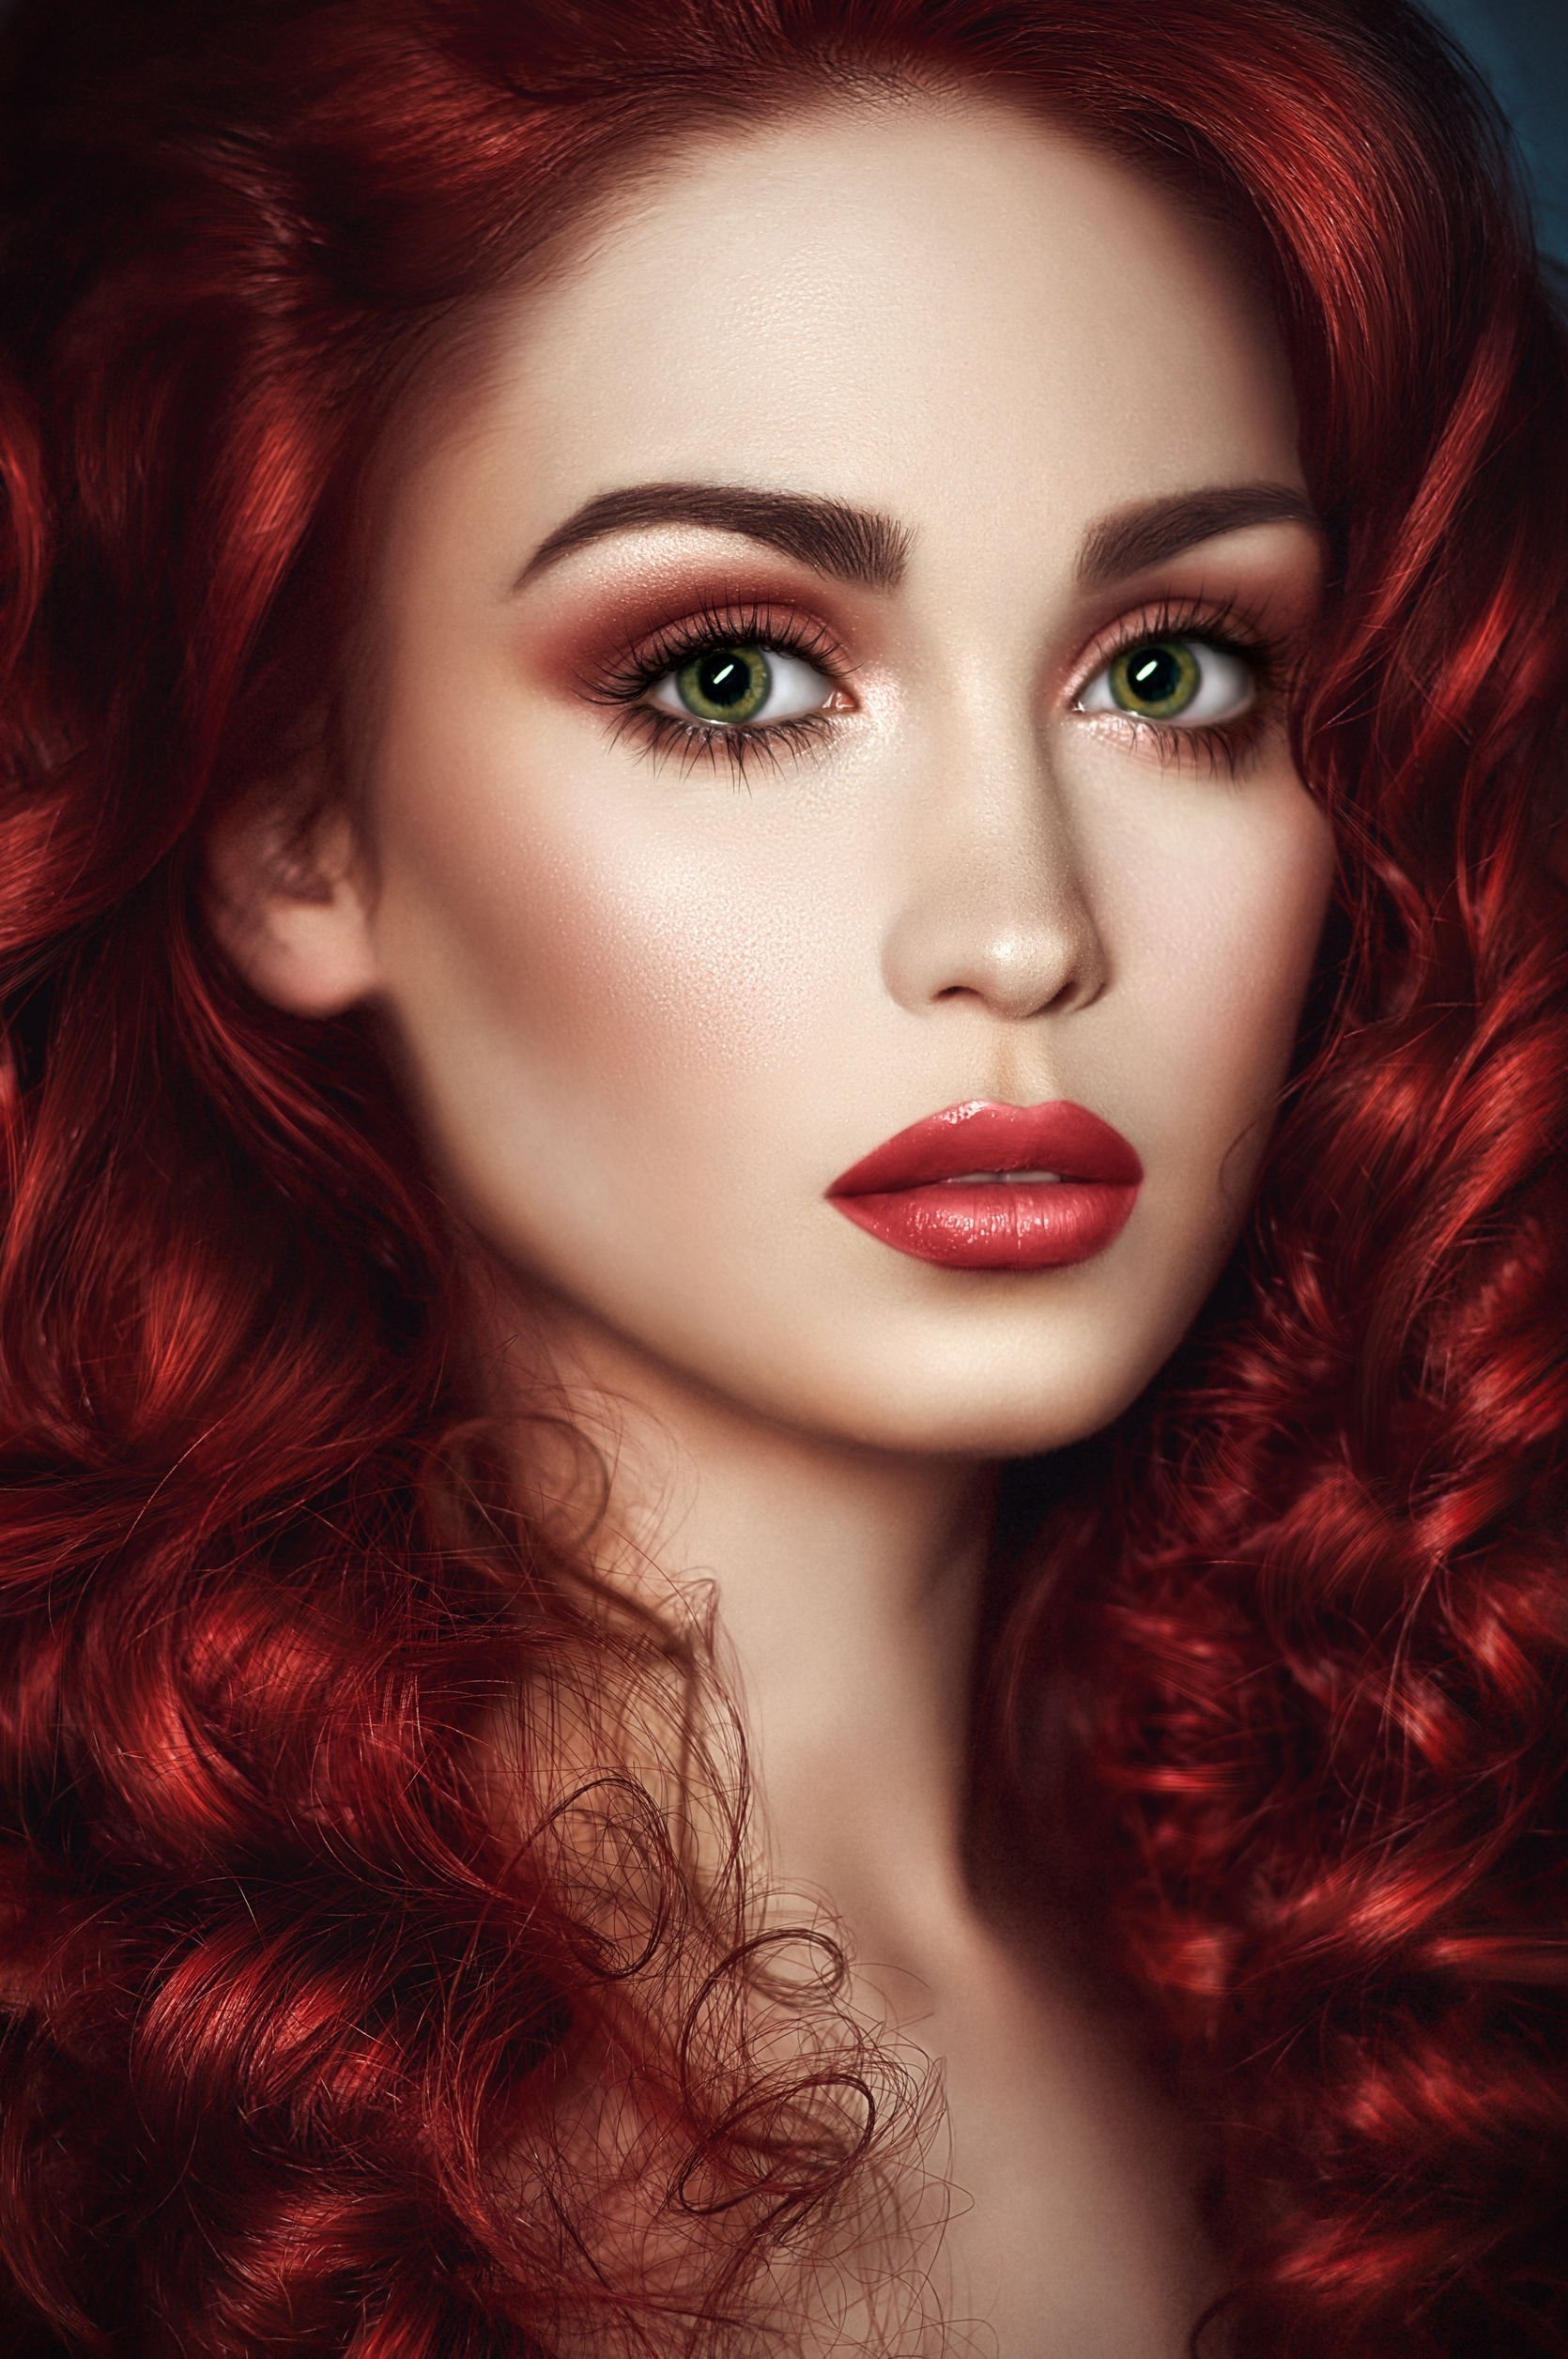 makeup colors for dark red hair and green eyes - wavy haircut